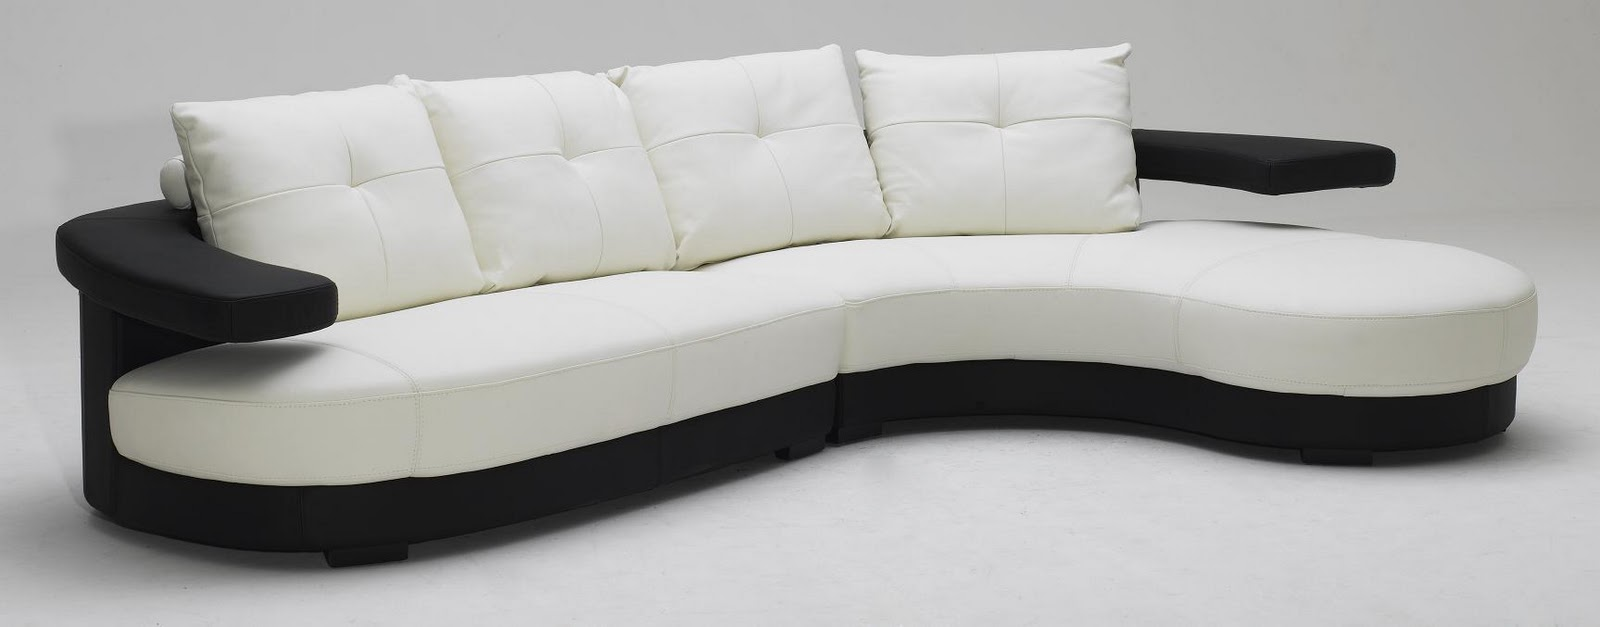 Modern Sofa Sets Designs 2012